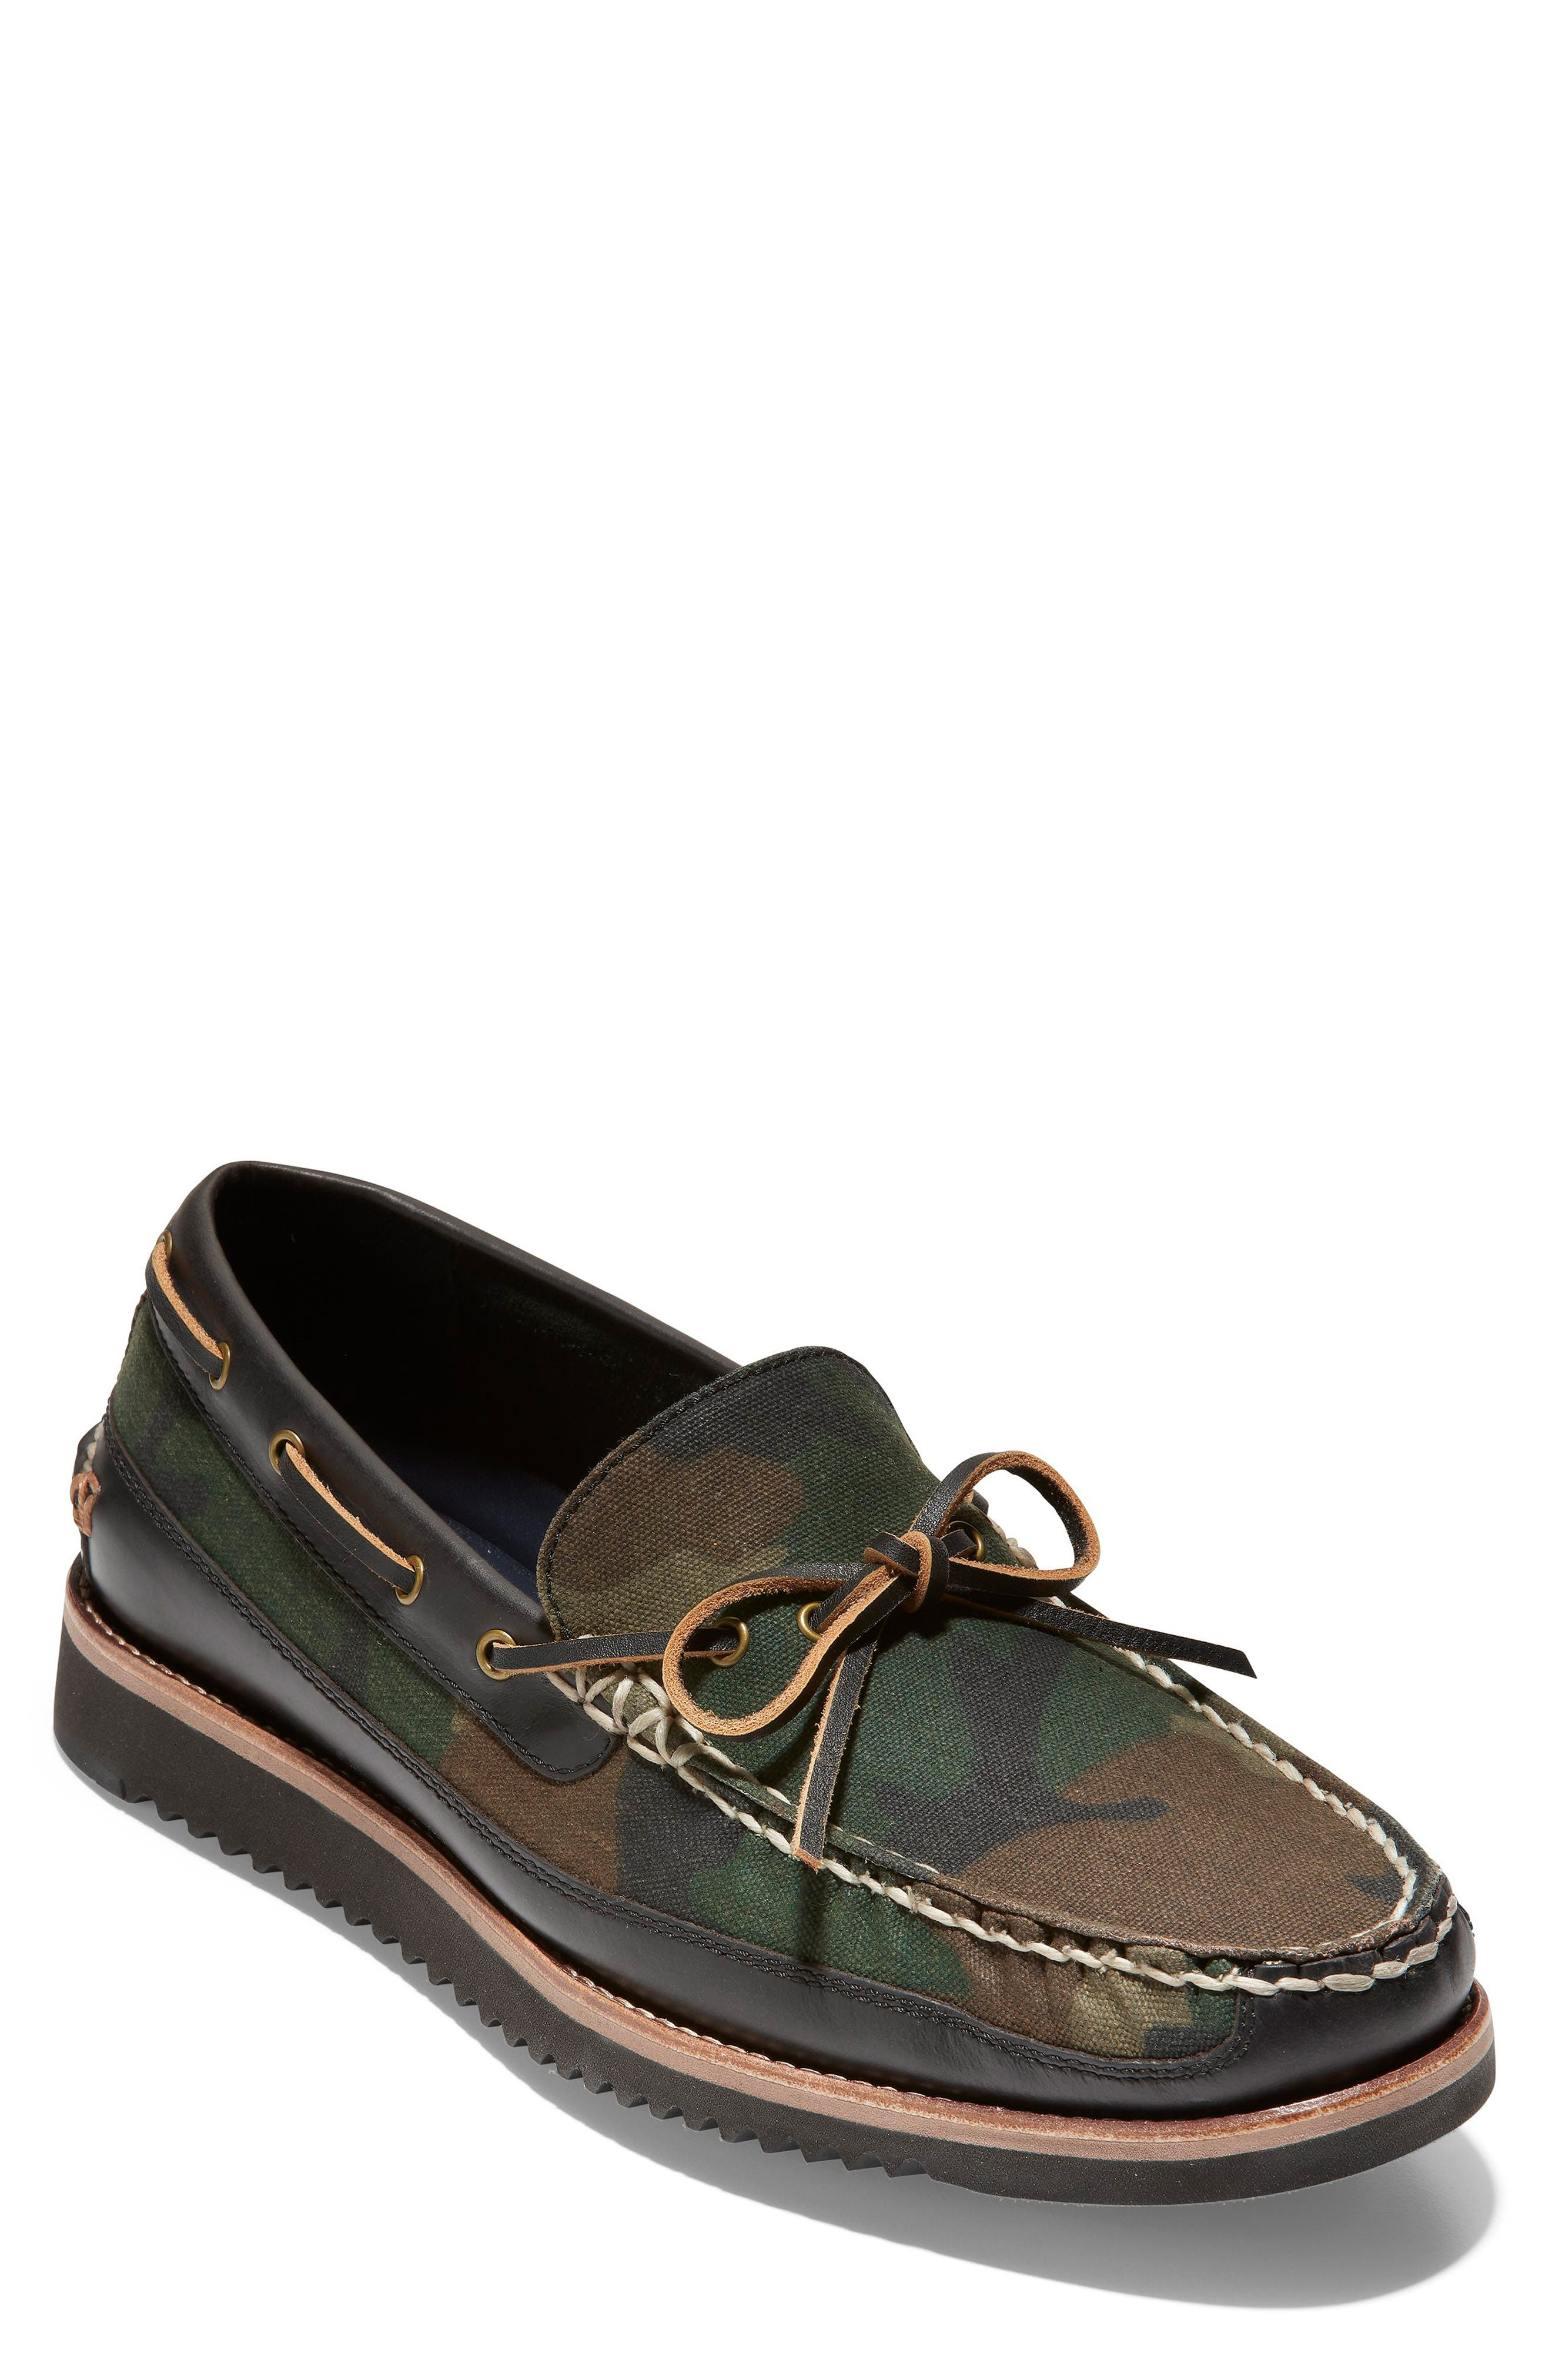 Cole Haan Pinch Loafer, Brown